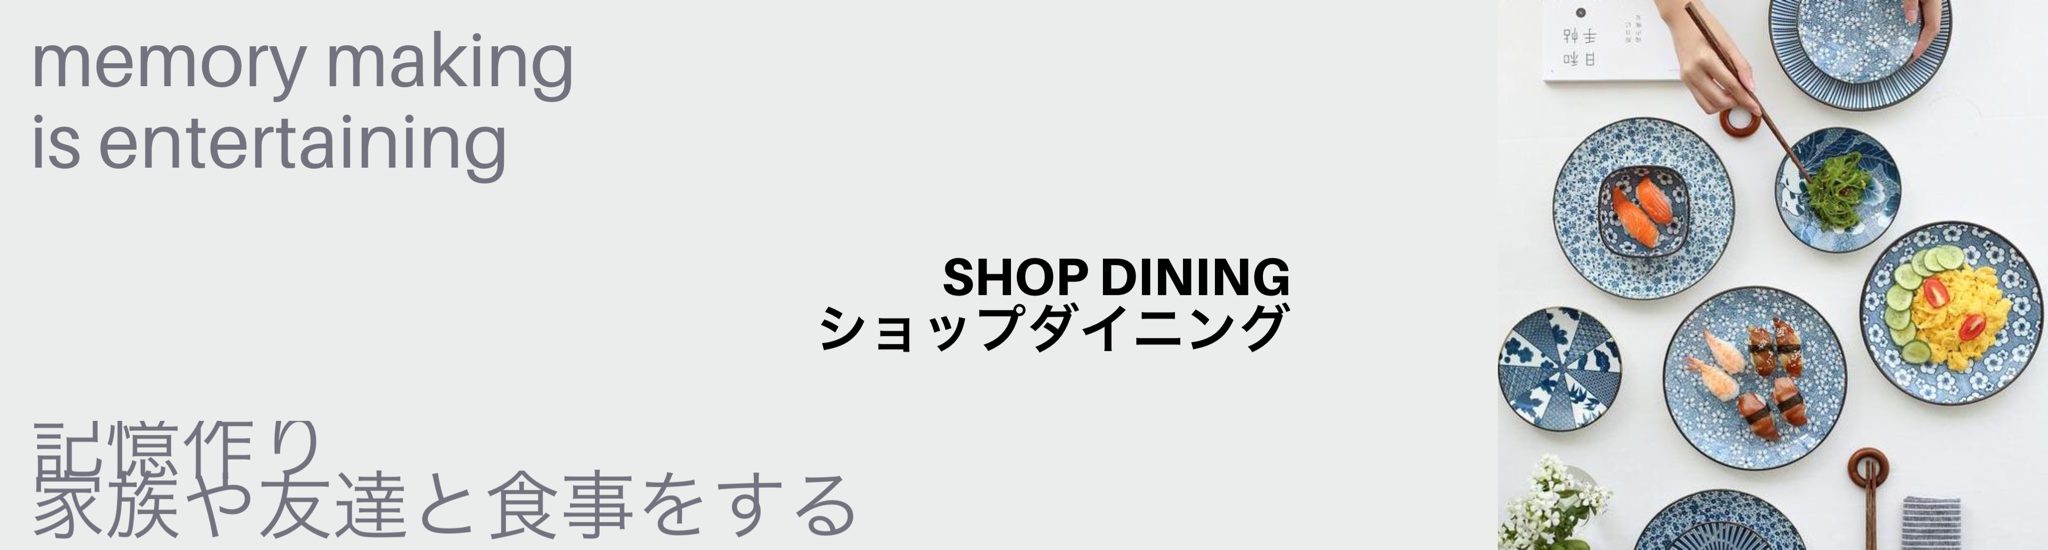 miTeigi Dining Collection | Japanese Apparel and Home Decor Retail Shopping